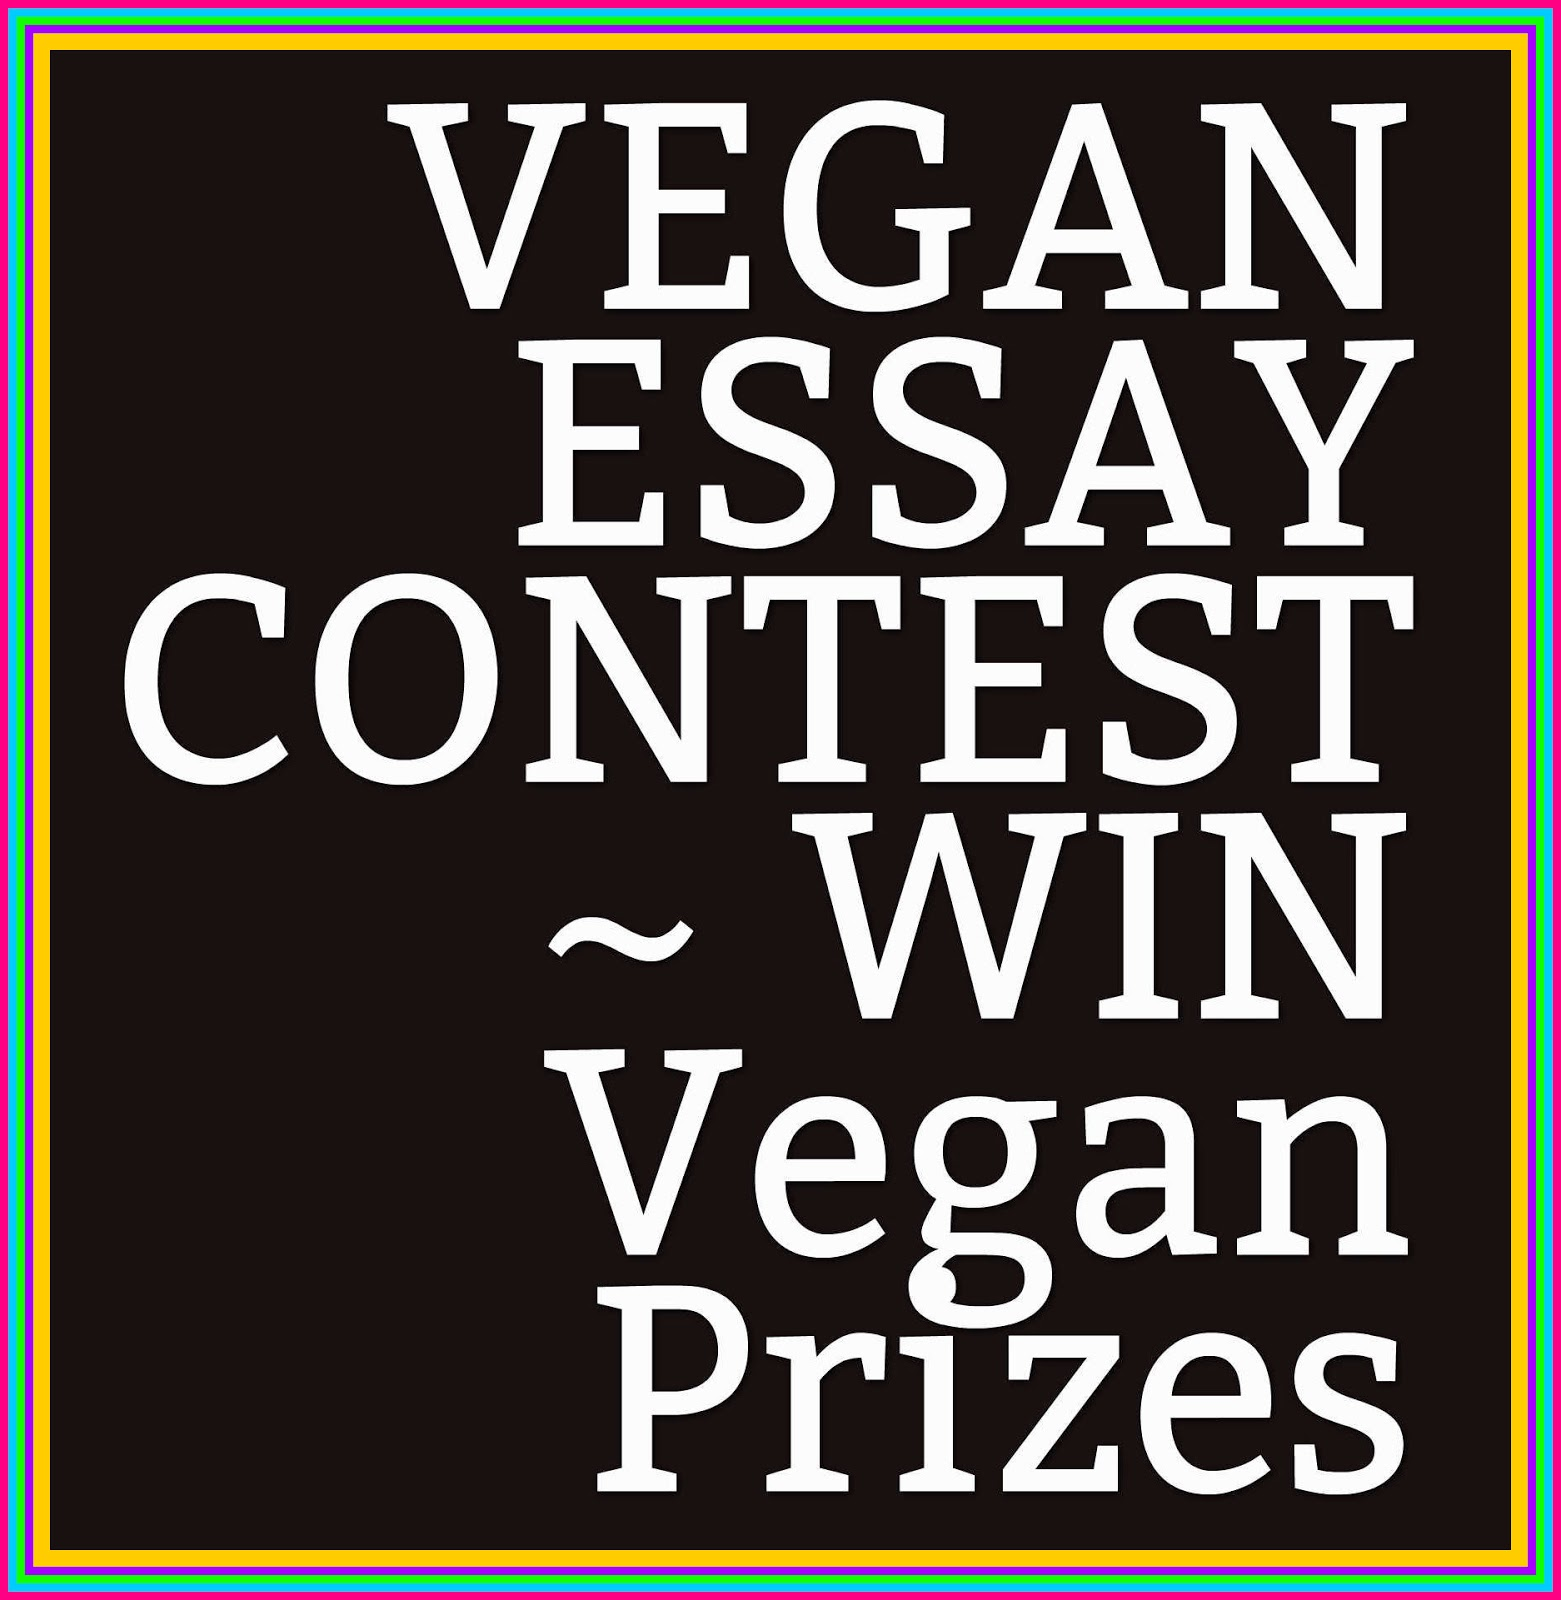 essay contes The essay contest has closed contest winners will be posted after the holidays check back in august for next contest.